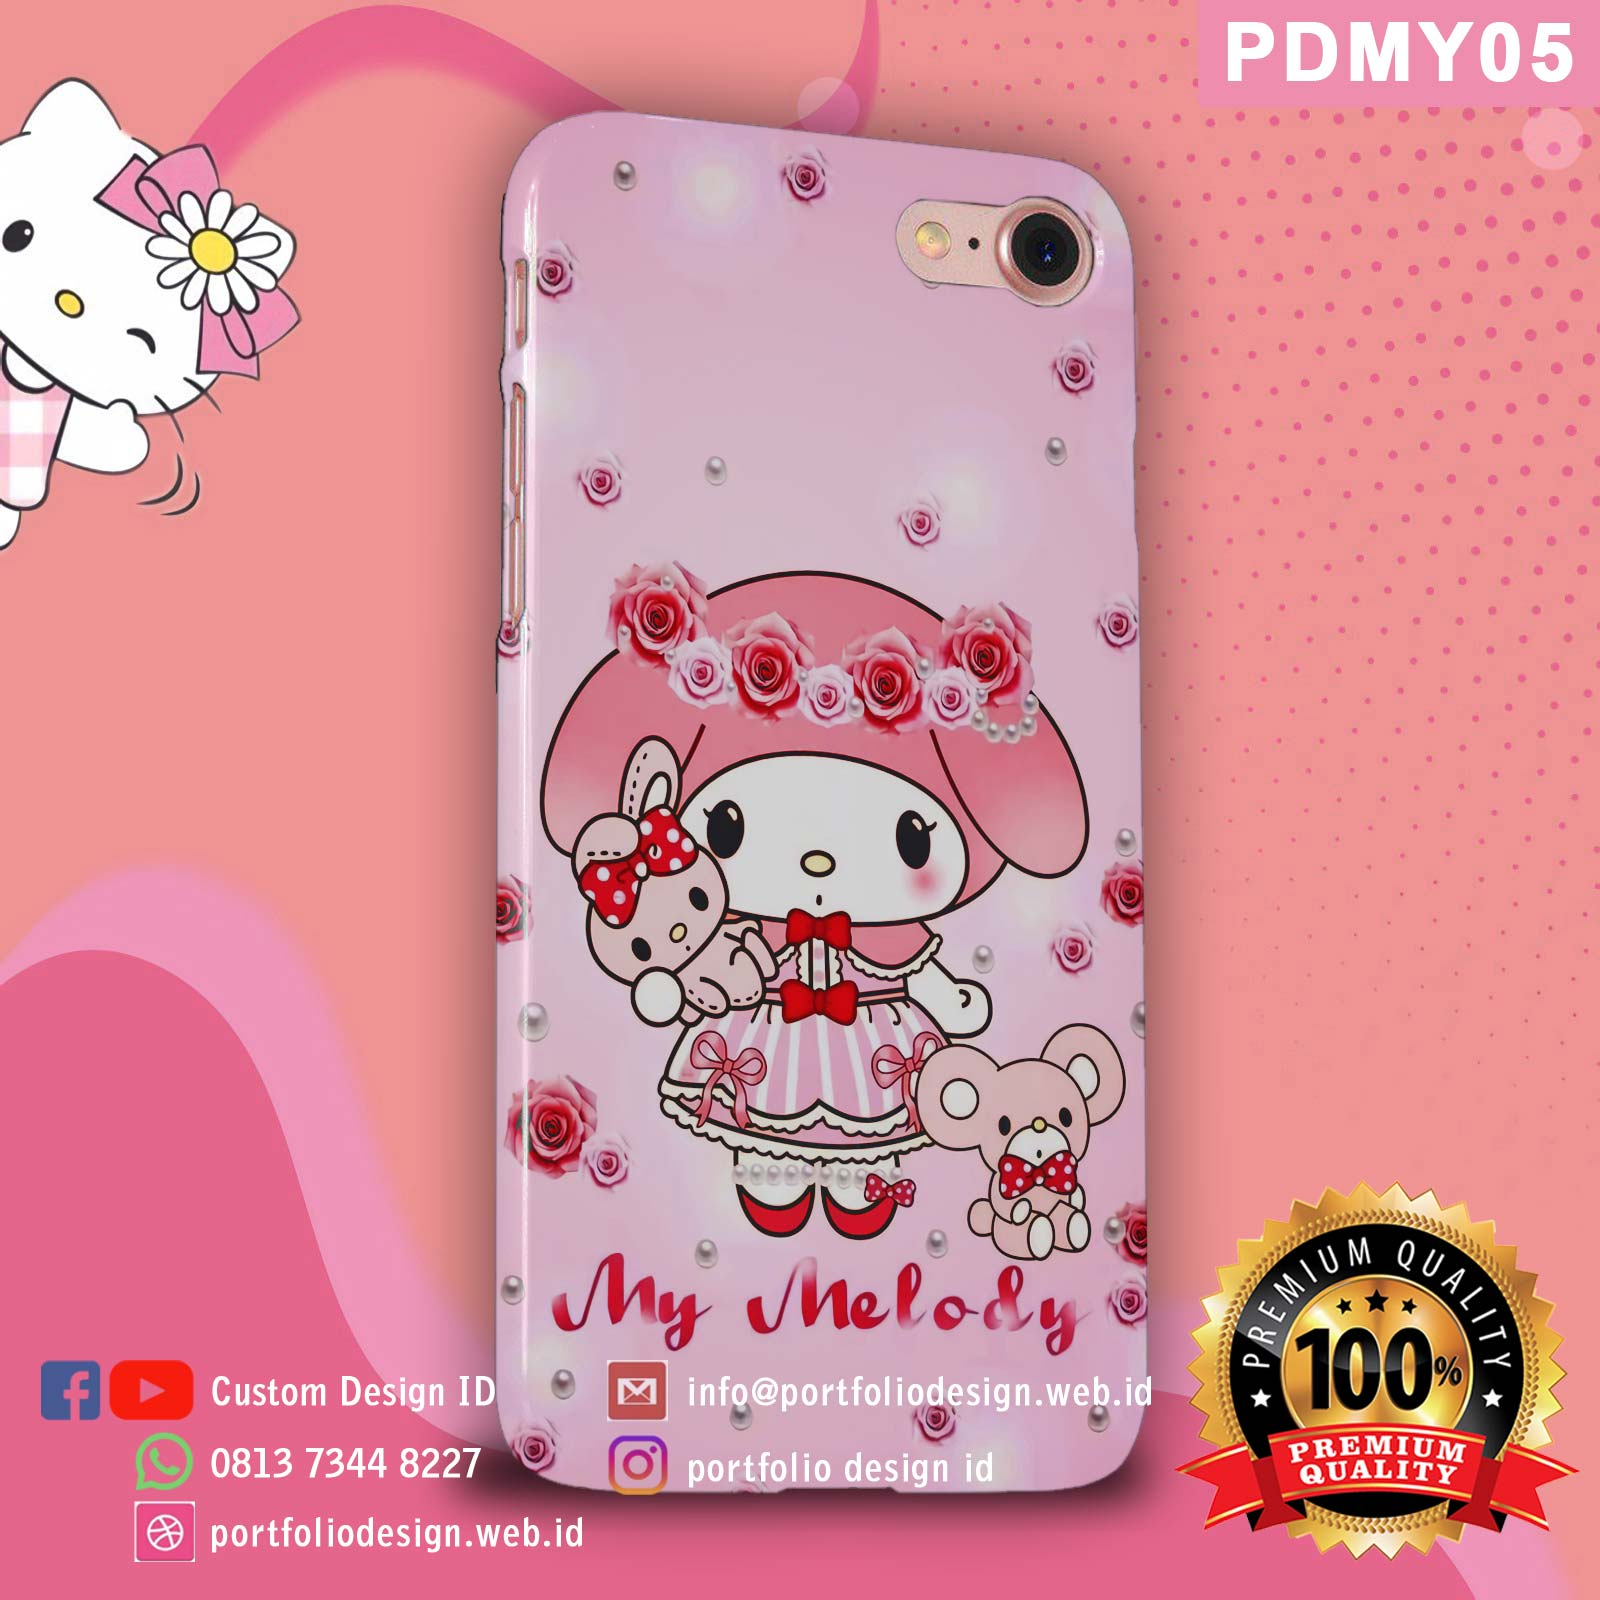 Casing hp my melody PDMY05